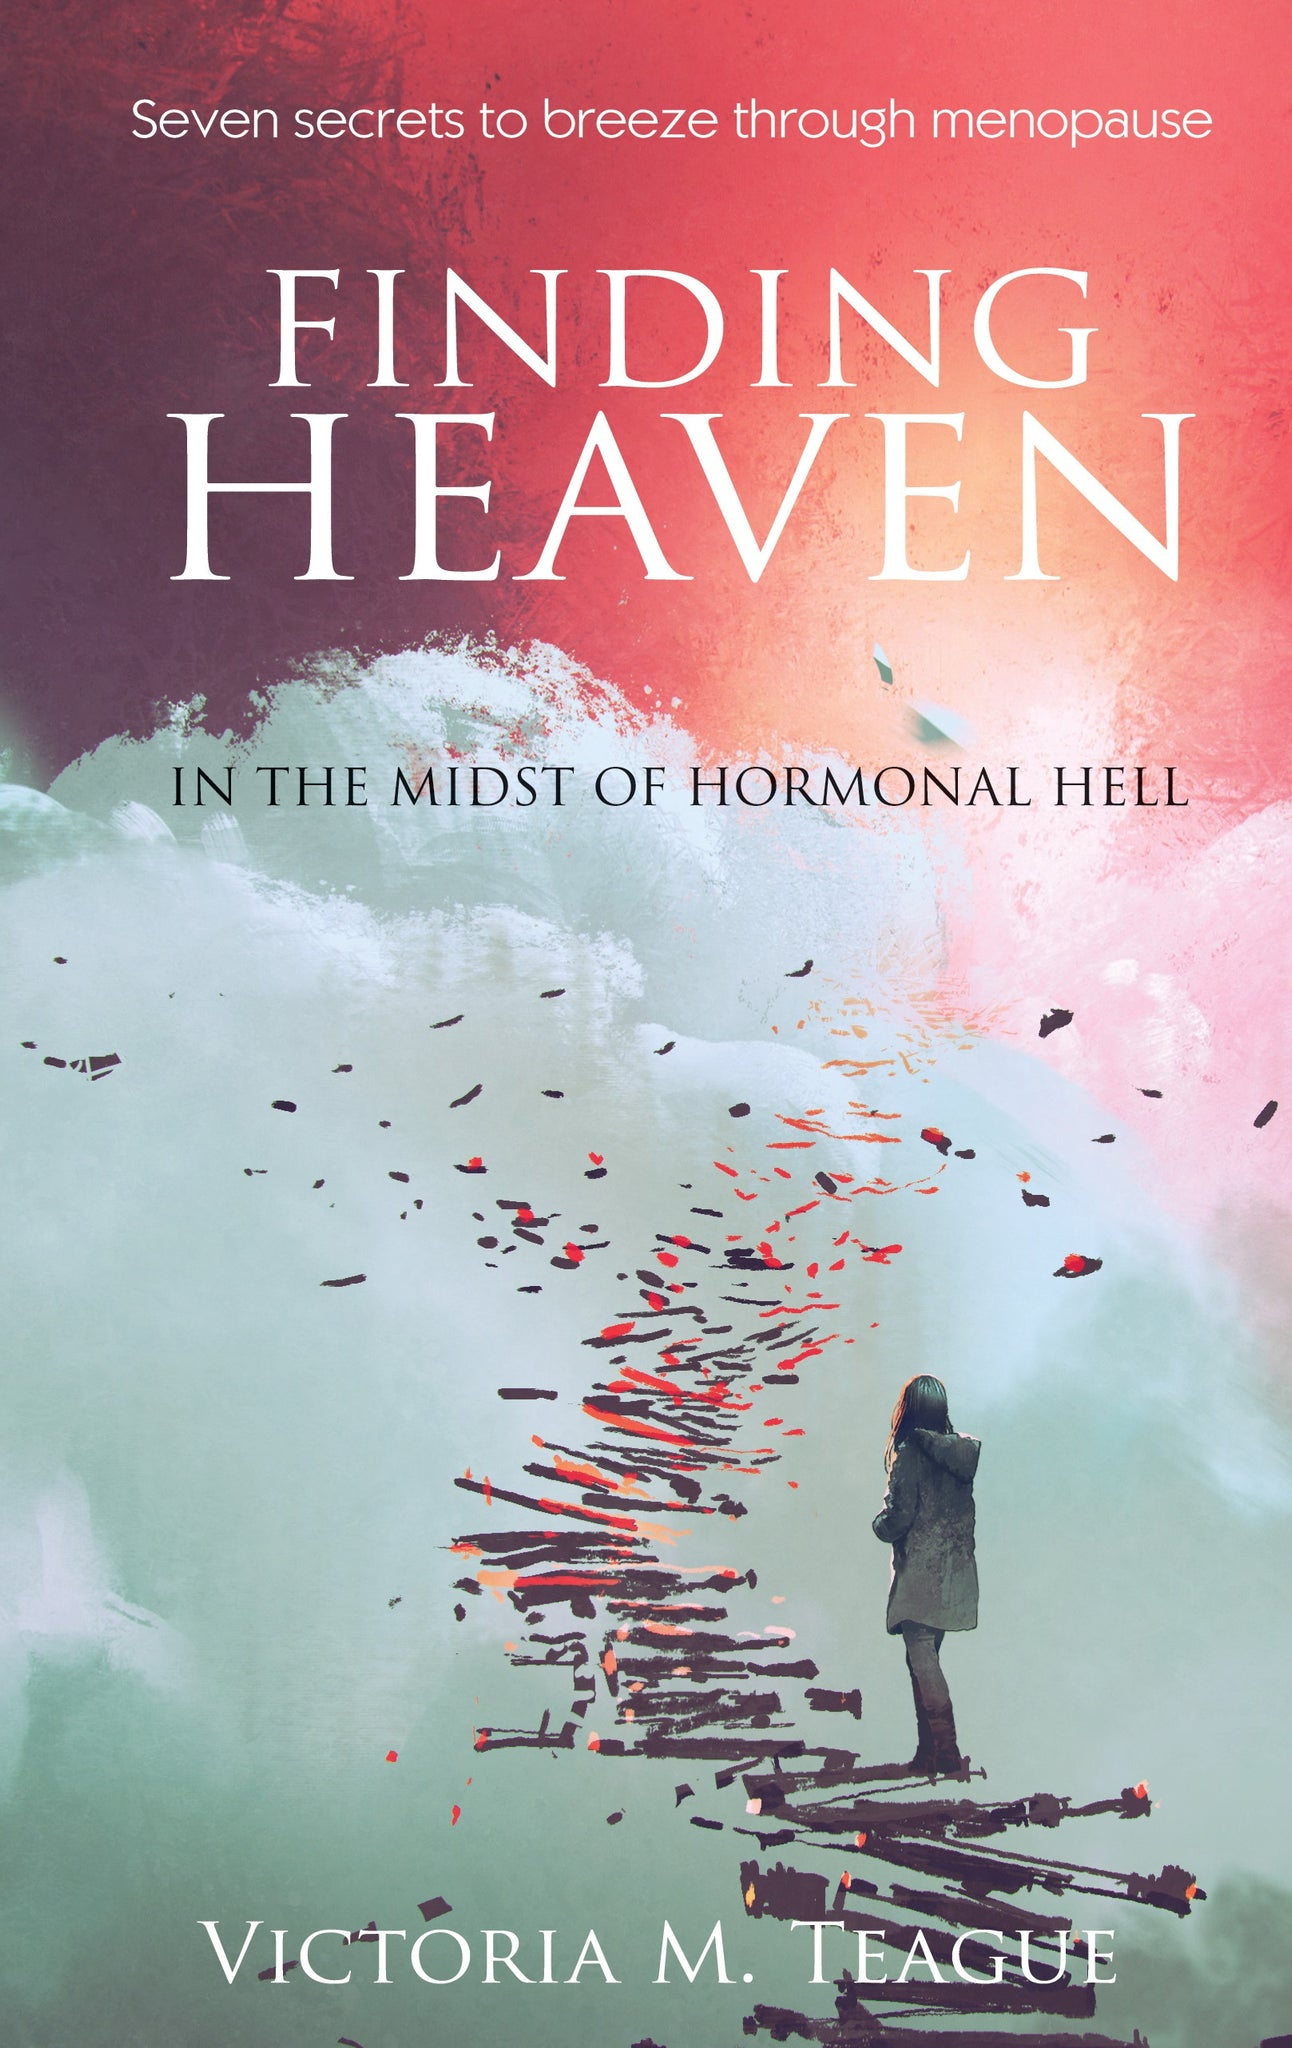 Finding Heaven in the Midst of Hormonal Hell